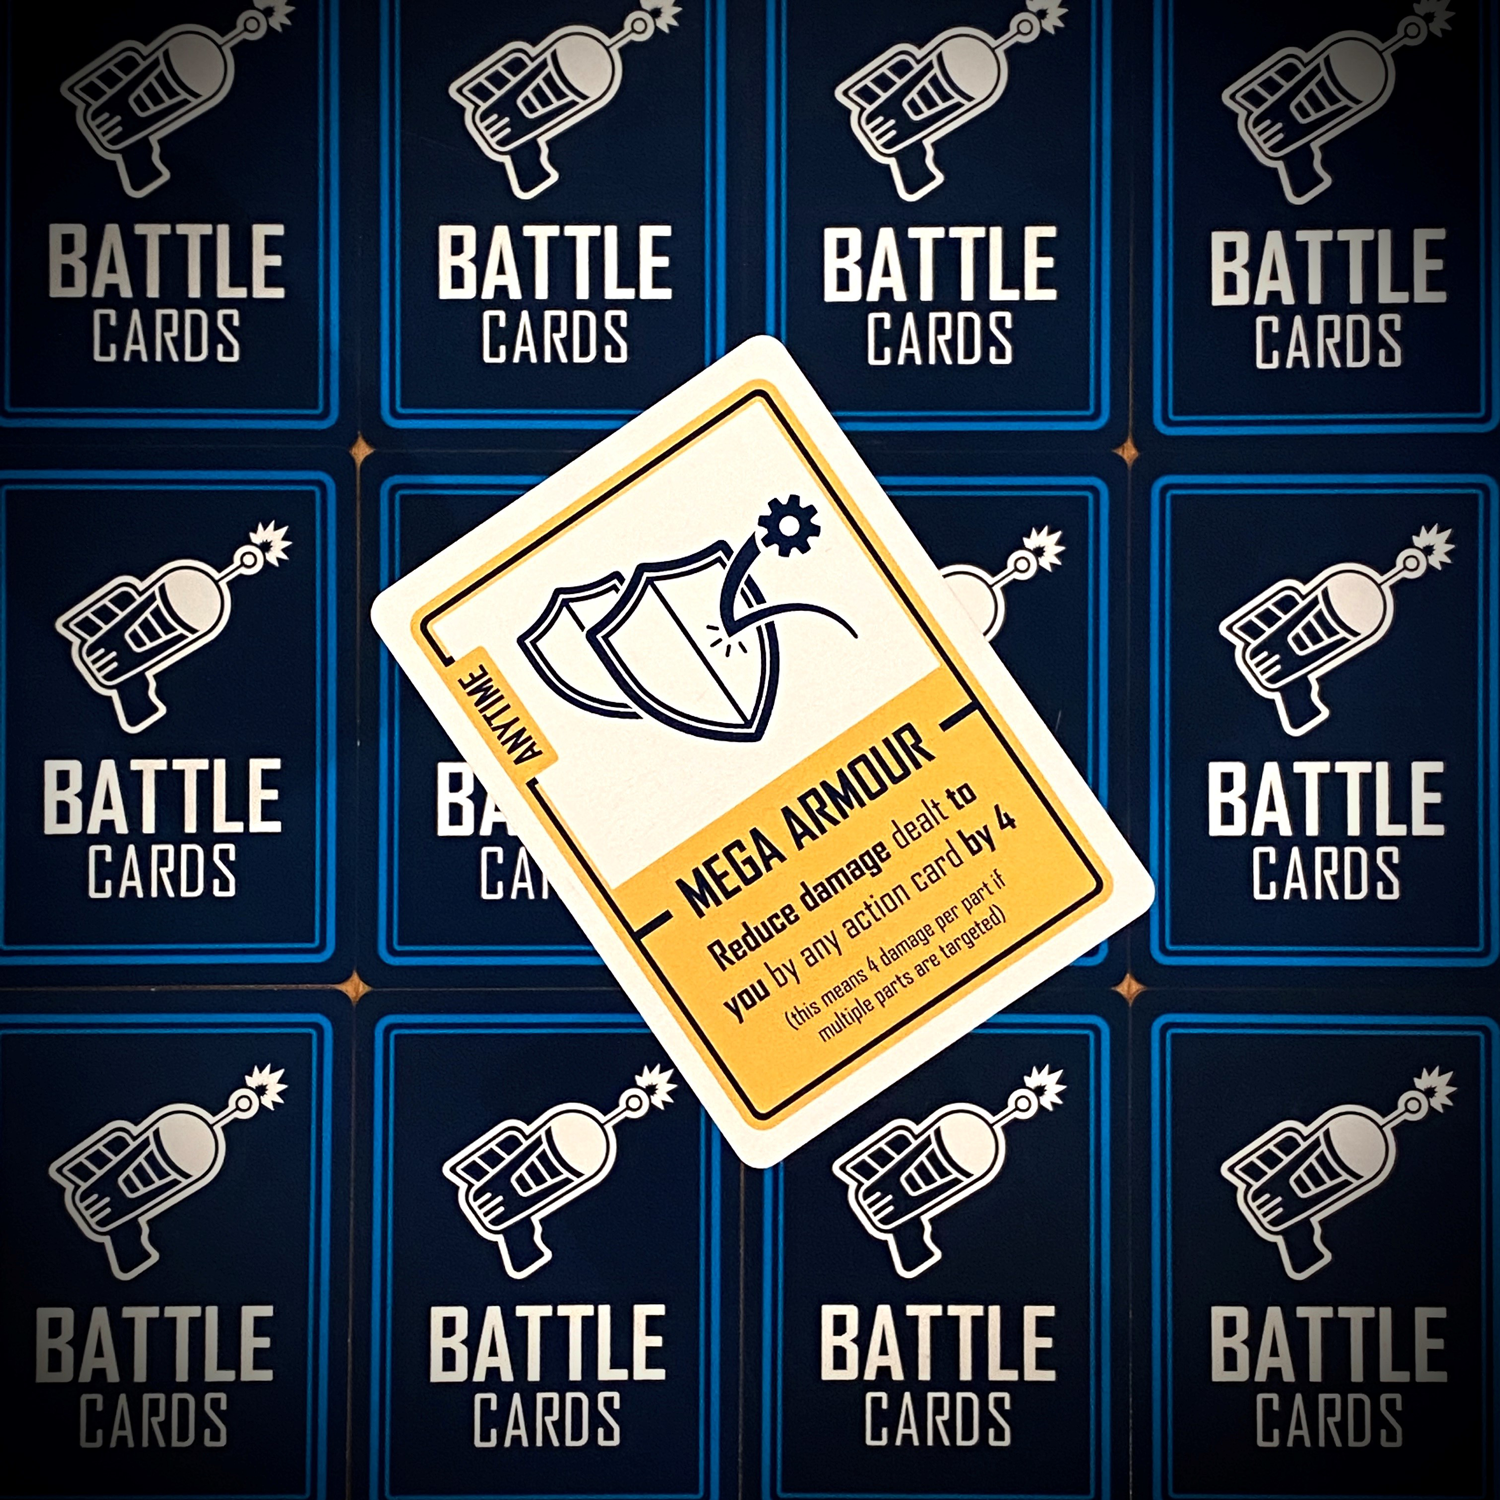 Anytime cards can be played at anytime in Bots Up, as you might expect!